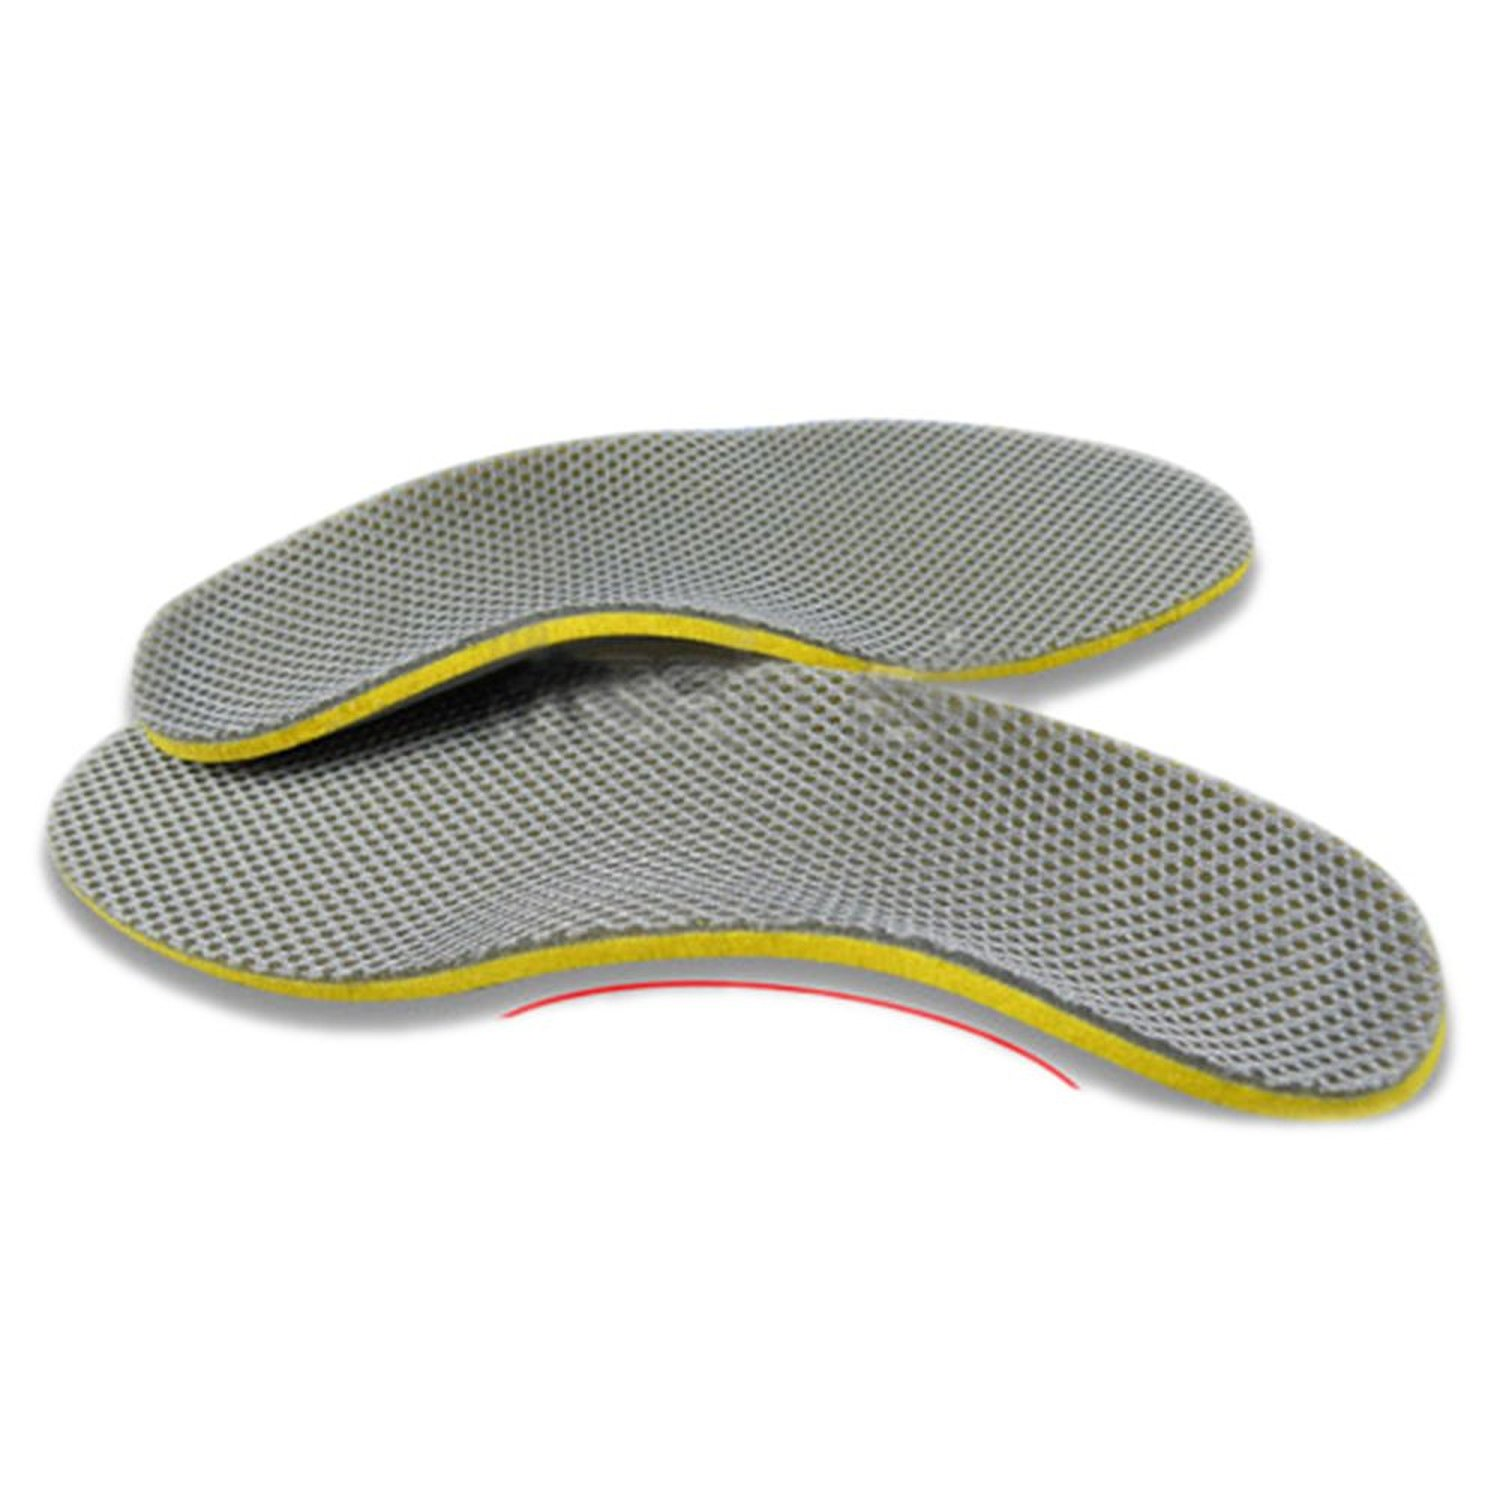 VSEN Hot StyleComfortable Orthotic Shoes Insoles Inserts High Arch Support Pad (S) yellow+Gray expfoot orthotic arch support shoe pad orthopedic insoles pu insoles for shoes breathable foot pads massage sport insole 045